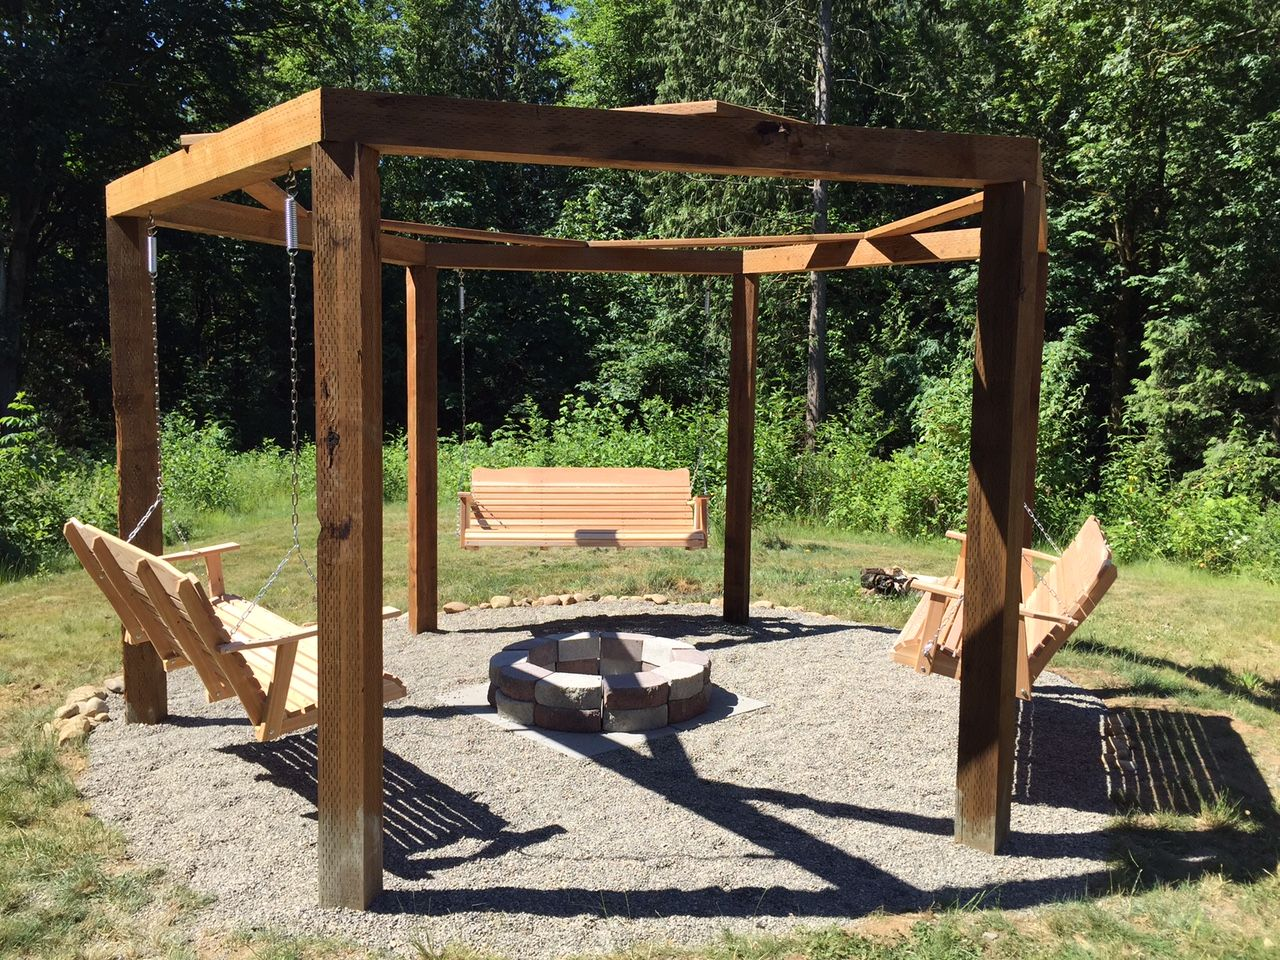 Fire Pit Gazebo Swingset Projects In 2019 Gazebo With